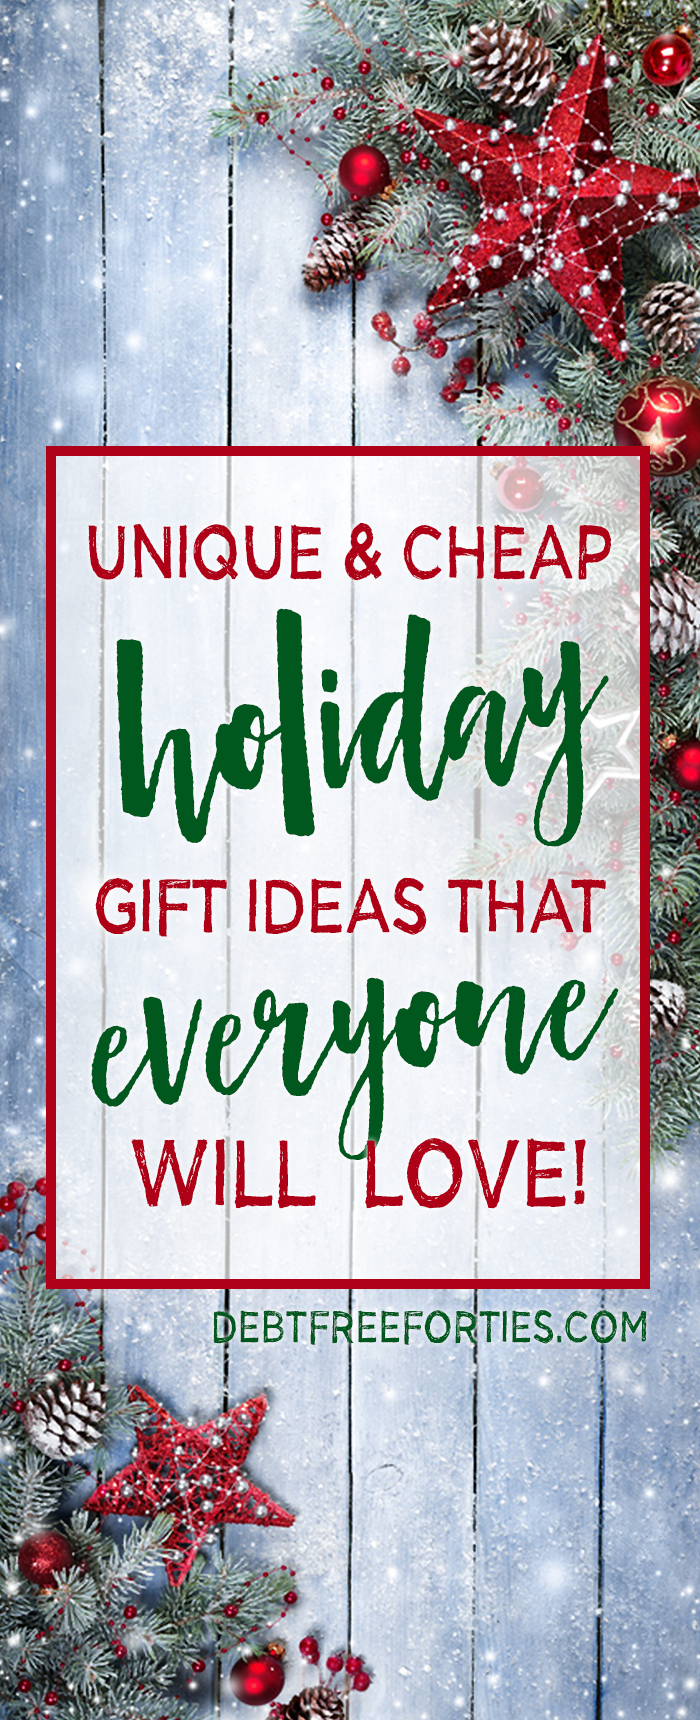 Unique & Cheap Holiday Gift Ideas that They'll Love ...